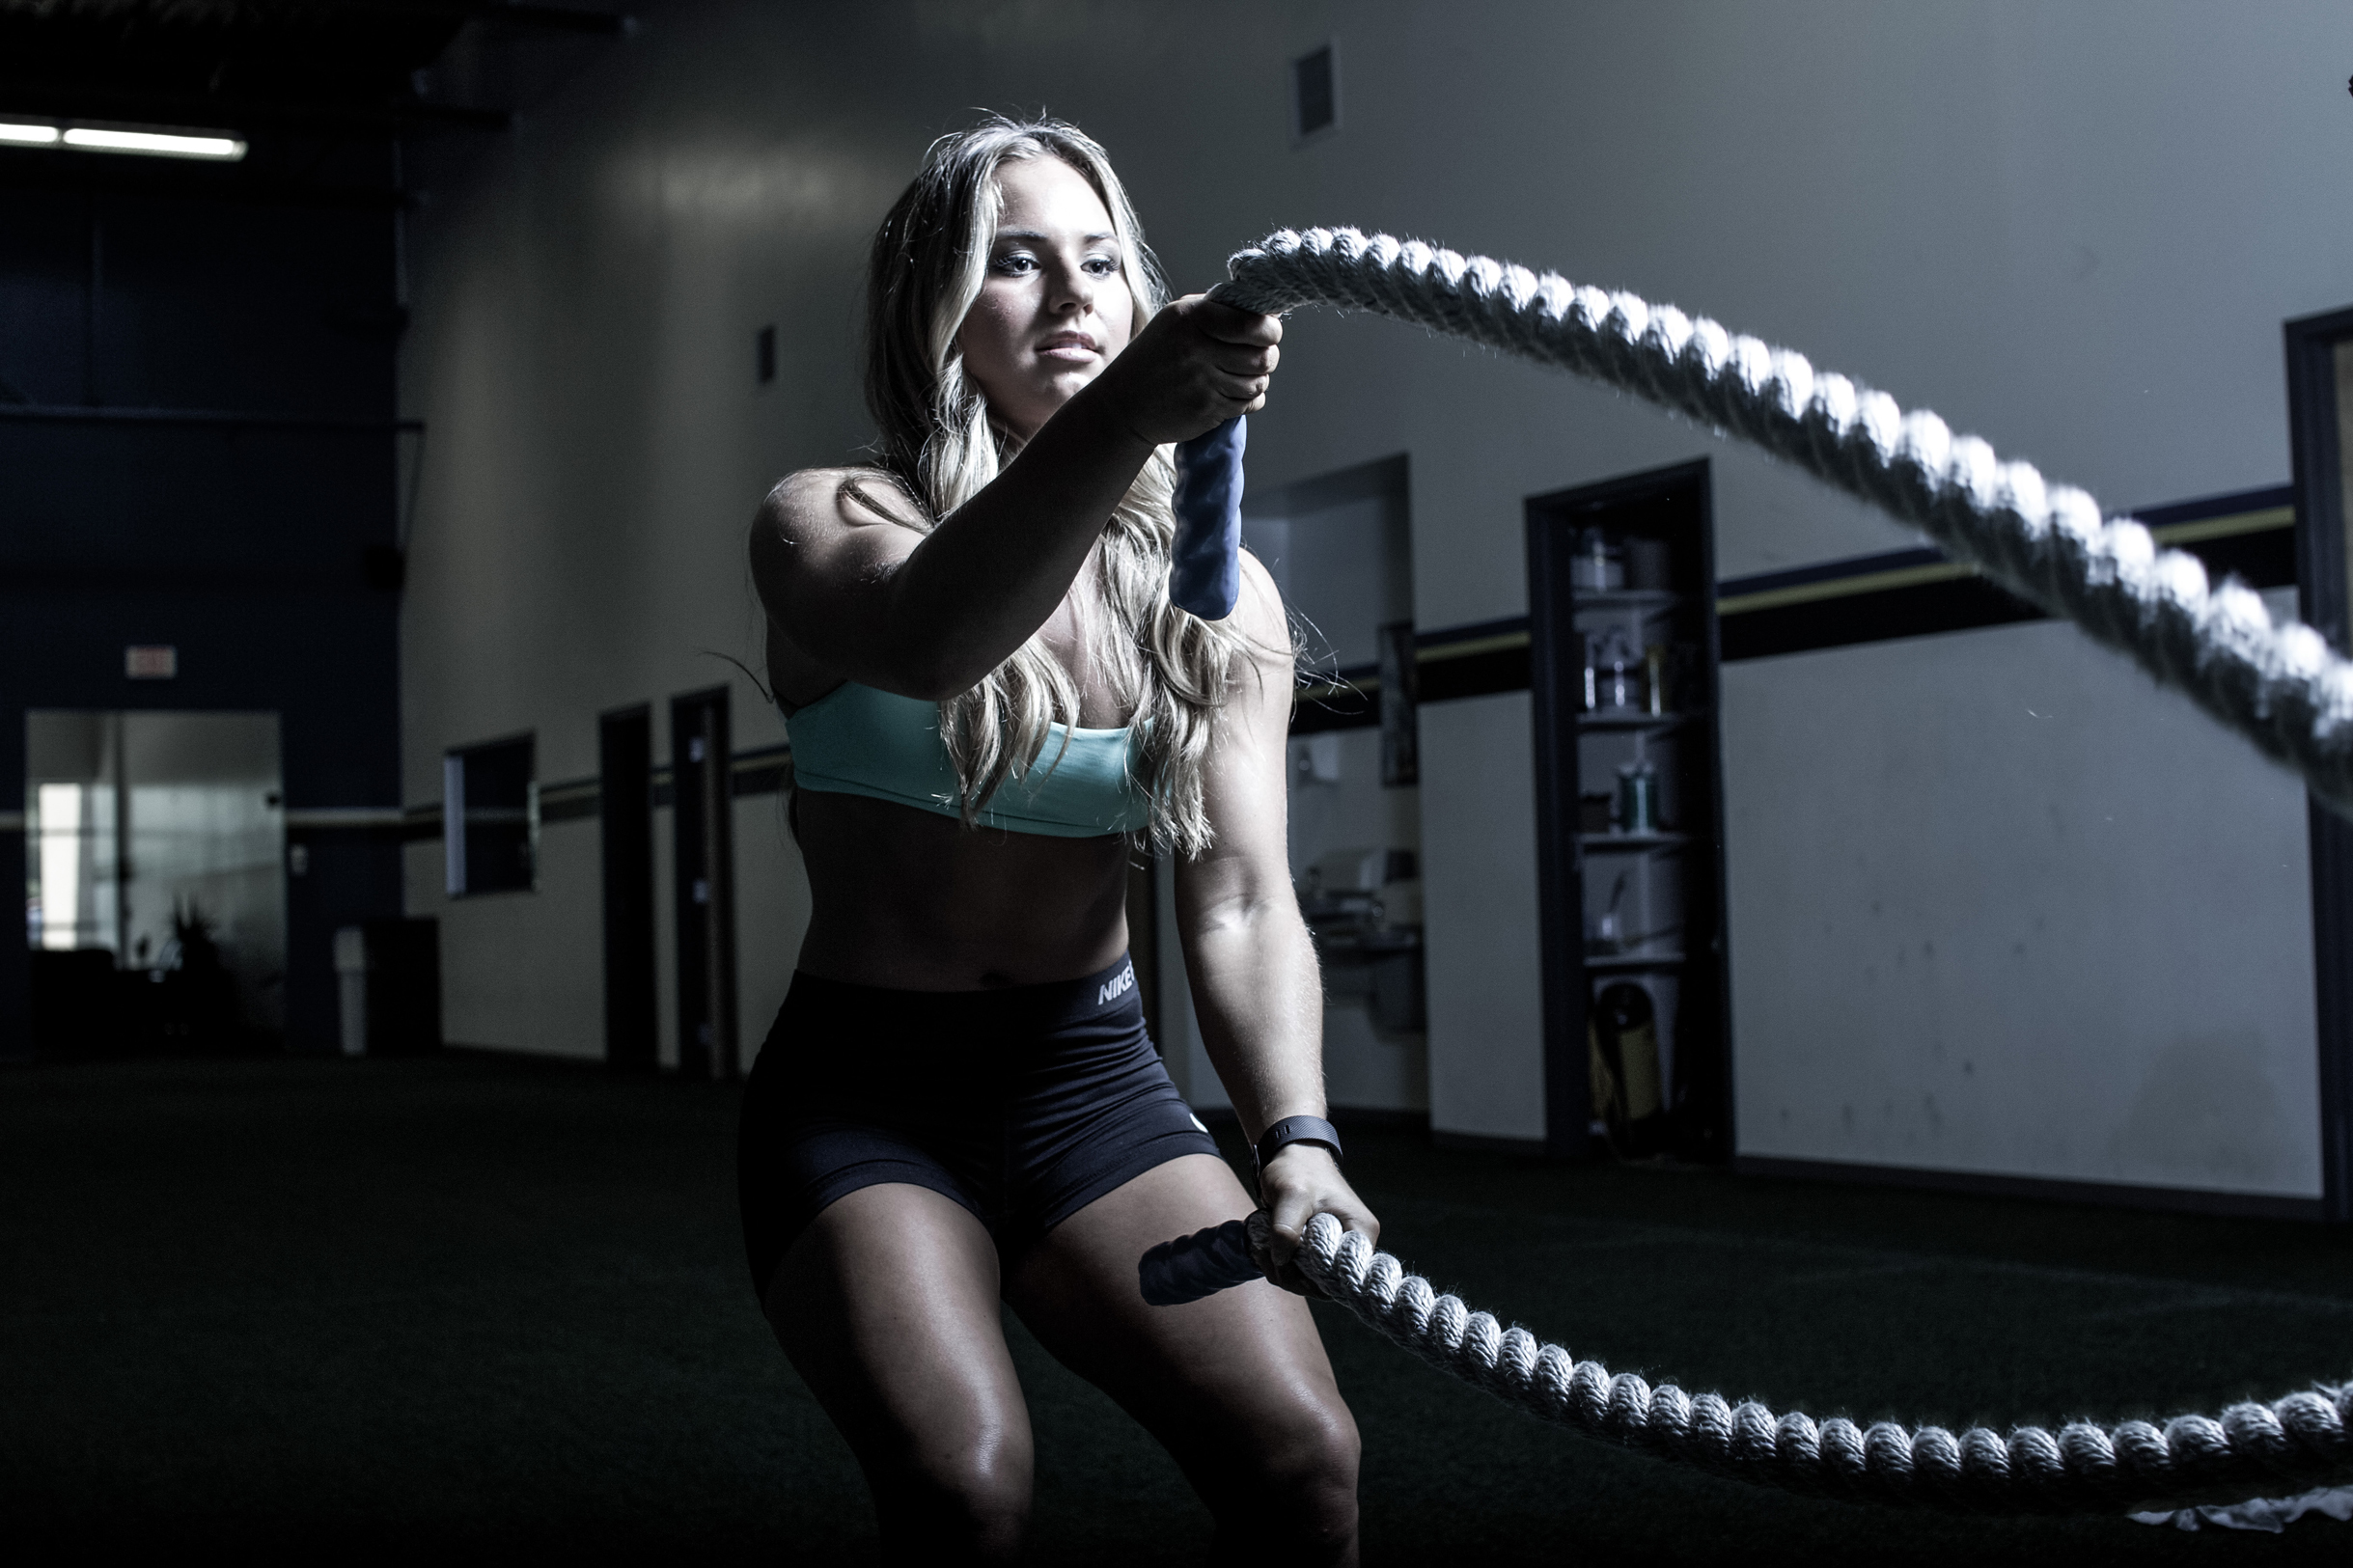 Wallpaper Crossfit Rope Workout Women Sport Gym